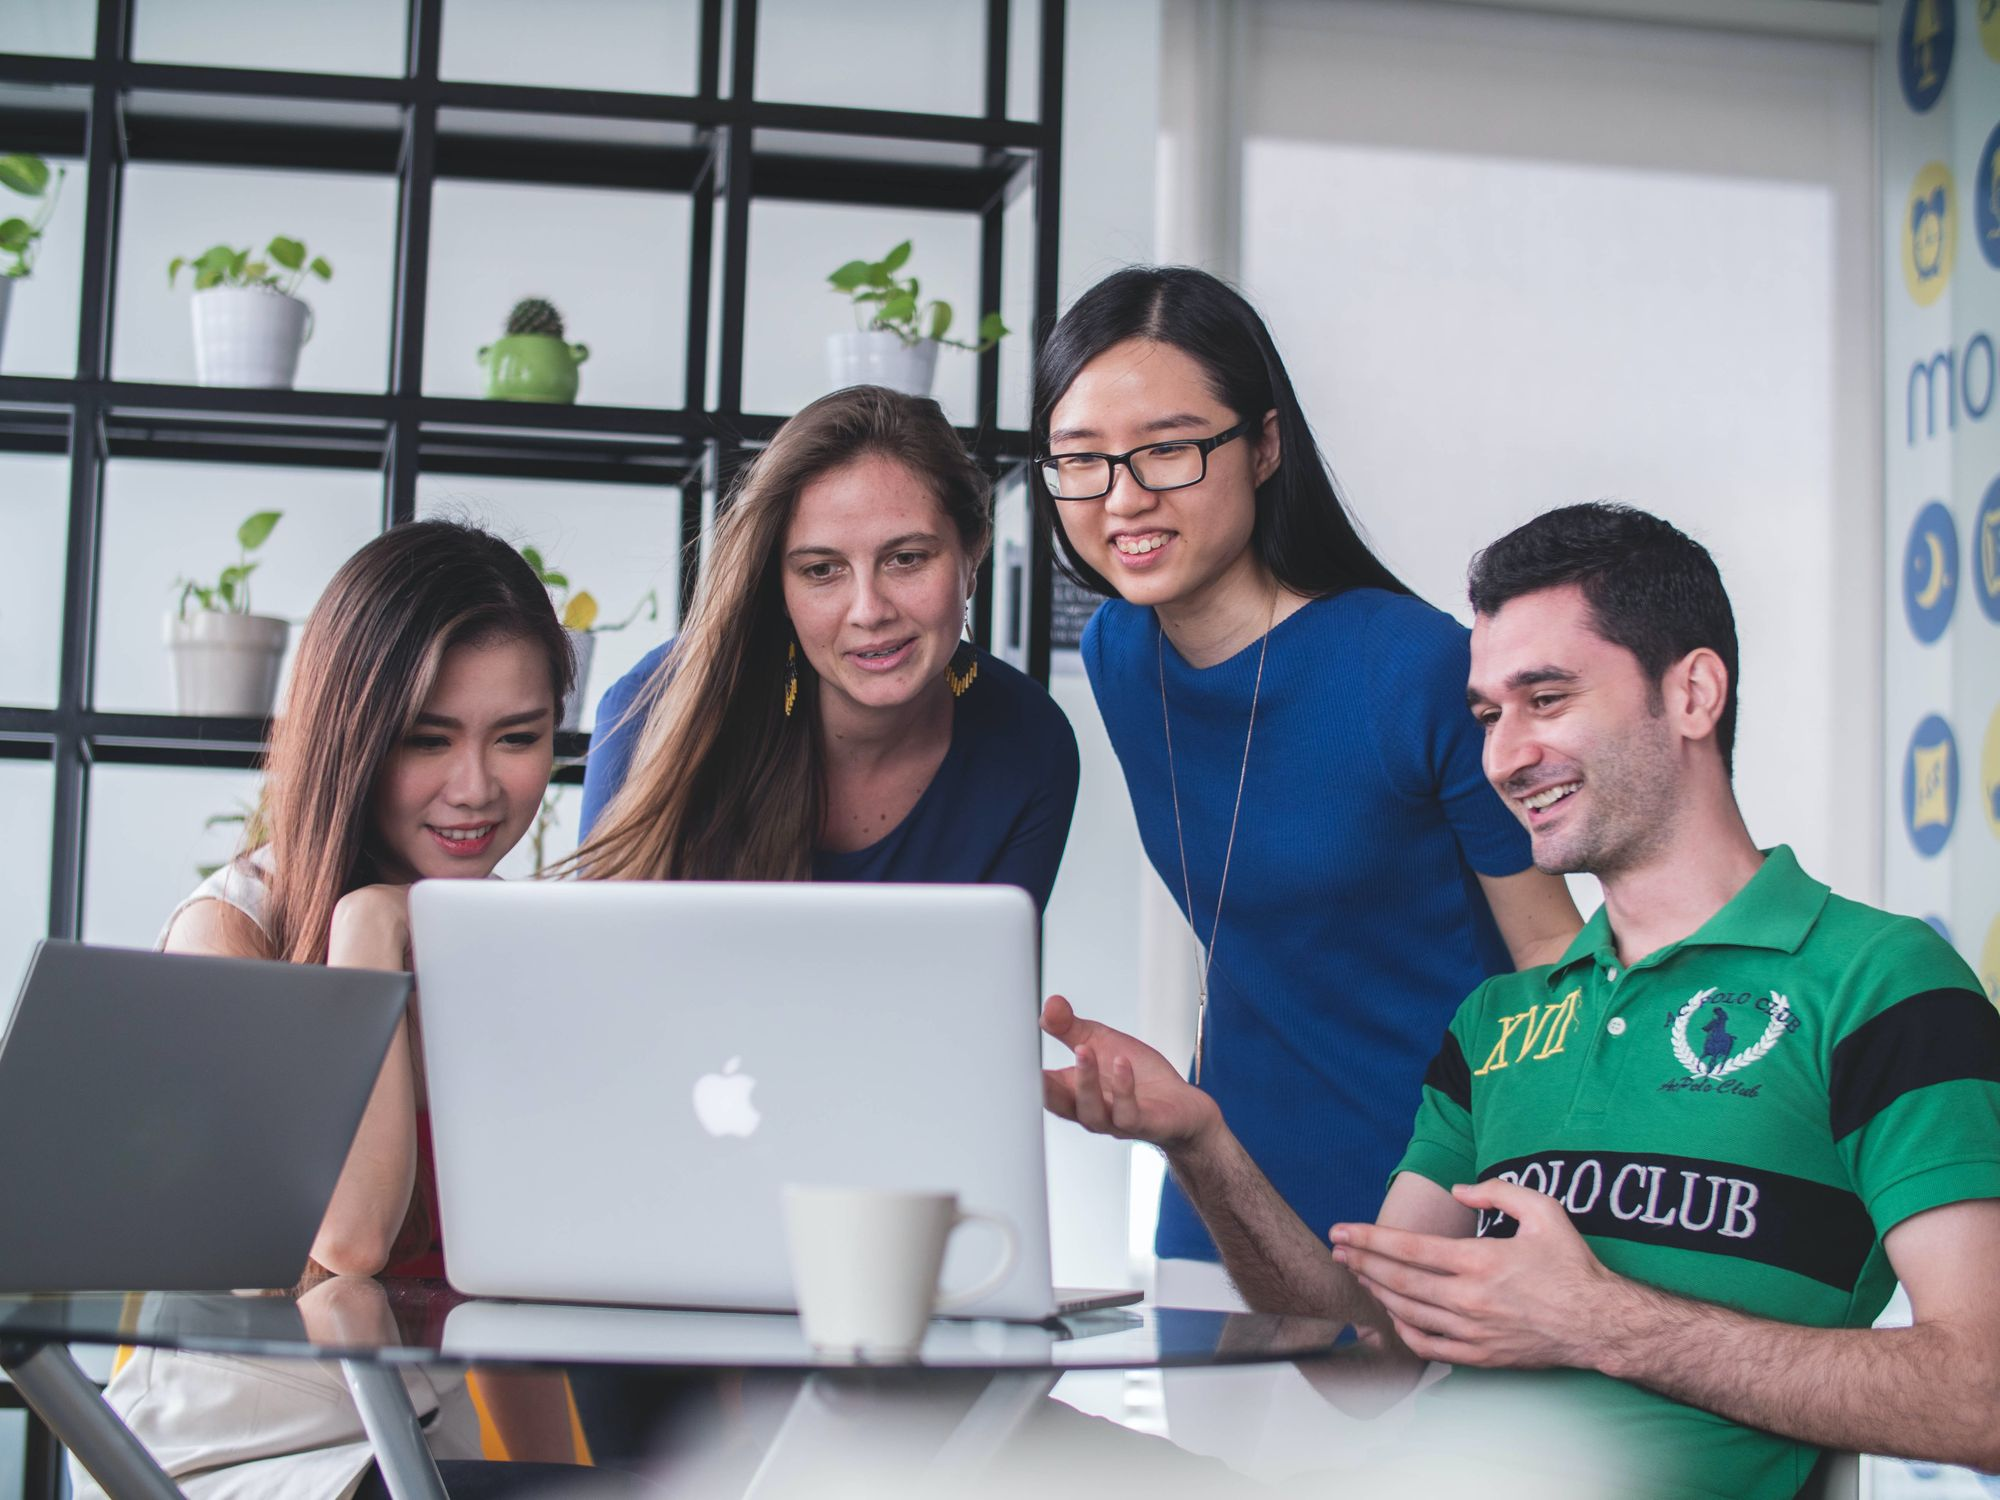 a group of four friends crowd around a computer screen